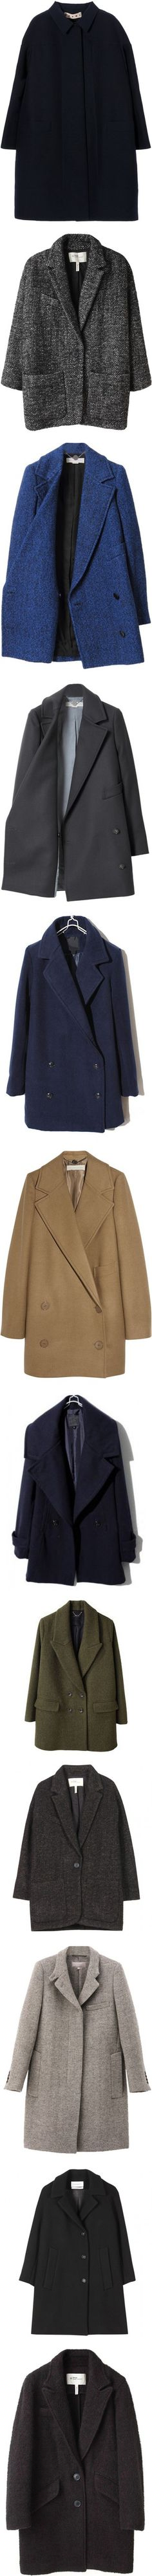 """""""Coats"""" by nobko ❤ liked on Polyvore"""